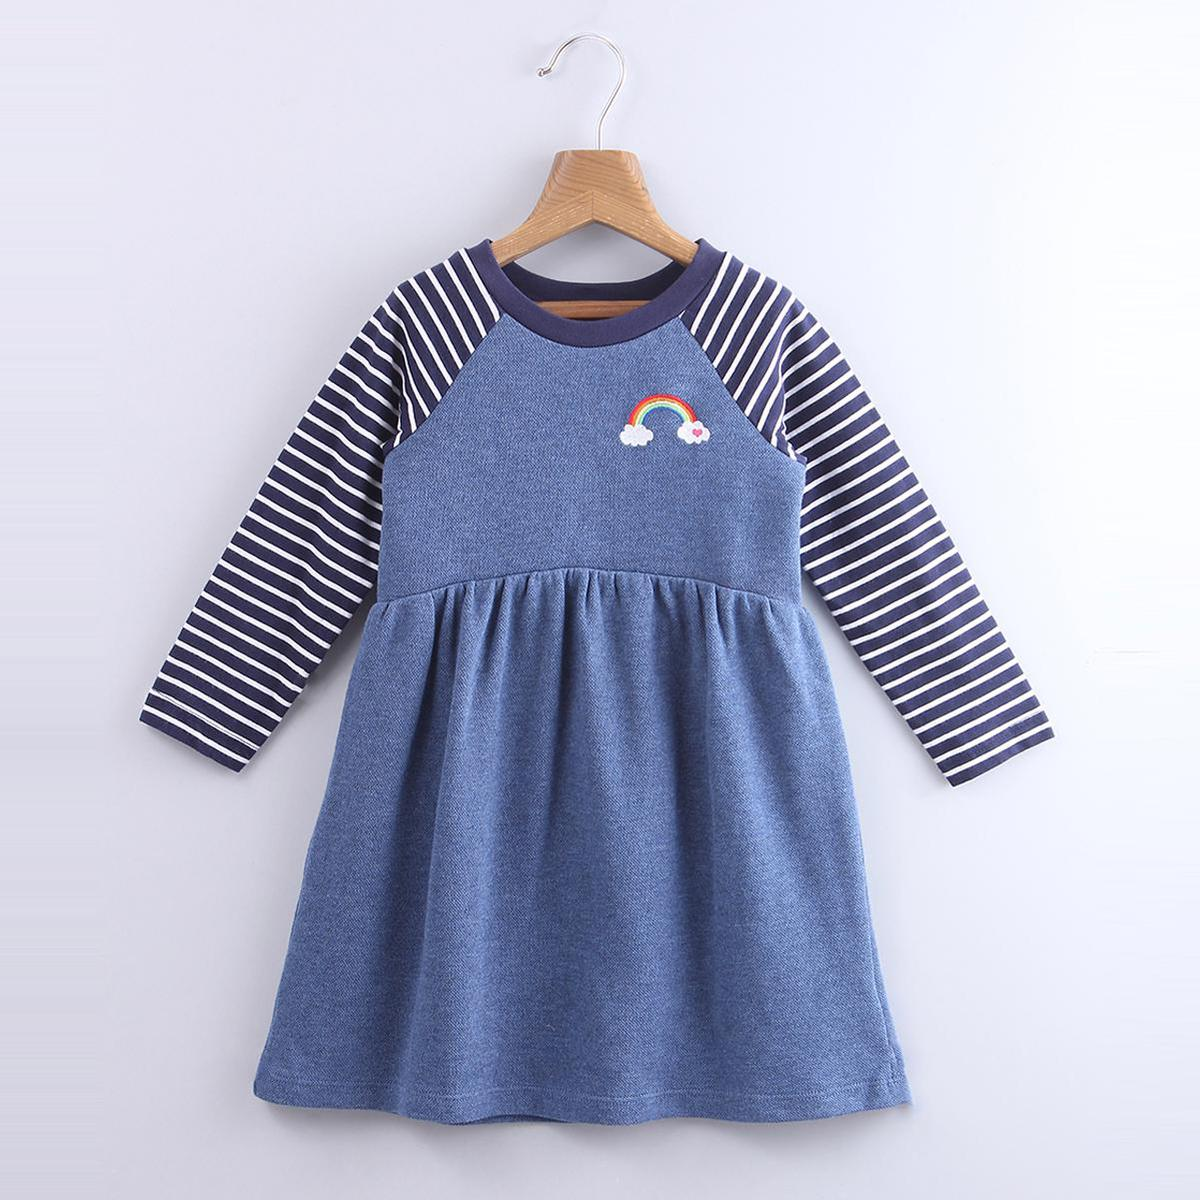 Beebay - Blue Colored Rainbow Embroidery Bodice Cotton Dress For Kids Girls